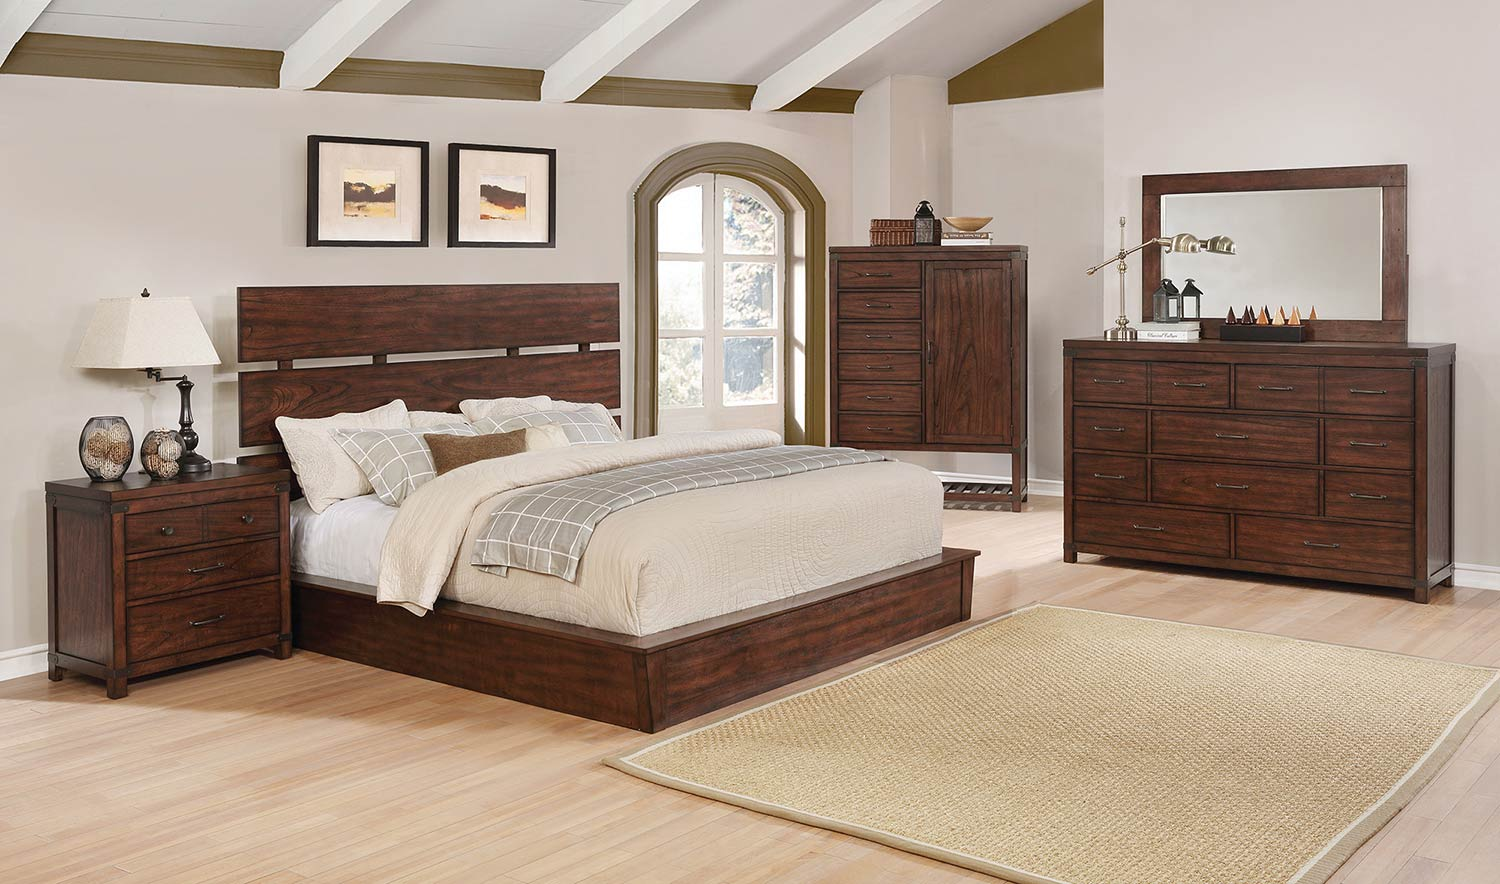 Coaster Artesia Platform Bedroom Set B - Dark Cocoa 204471-Bed-Set-B ...